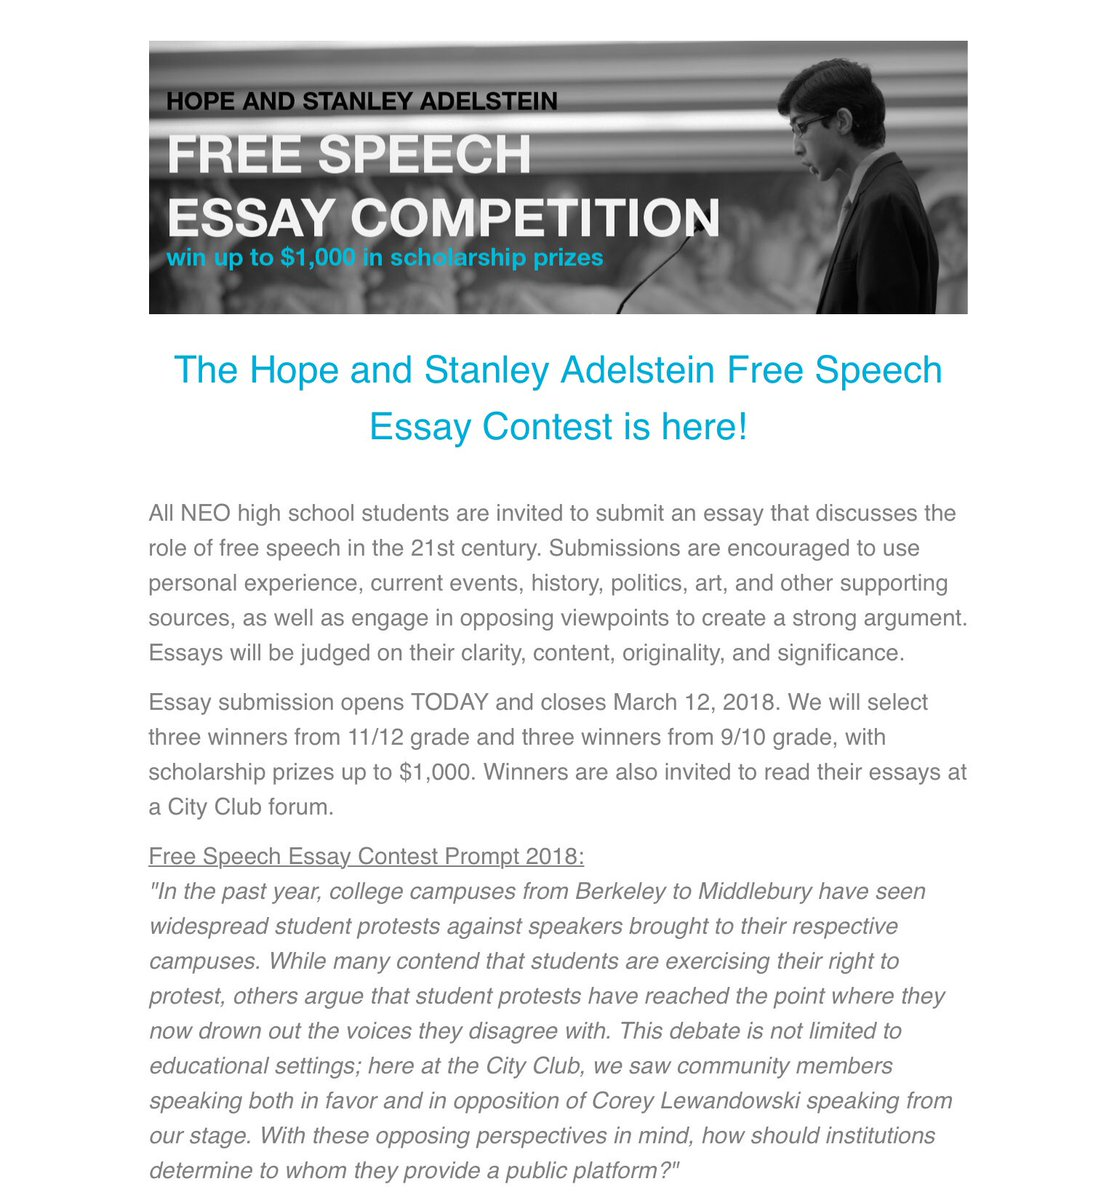 017 Dvmvx0ax0aaes7v Essay Example Scholarship Astounding Contest Contests For High School Students 2019 Middle Full